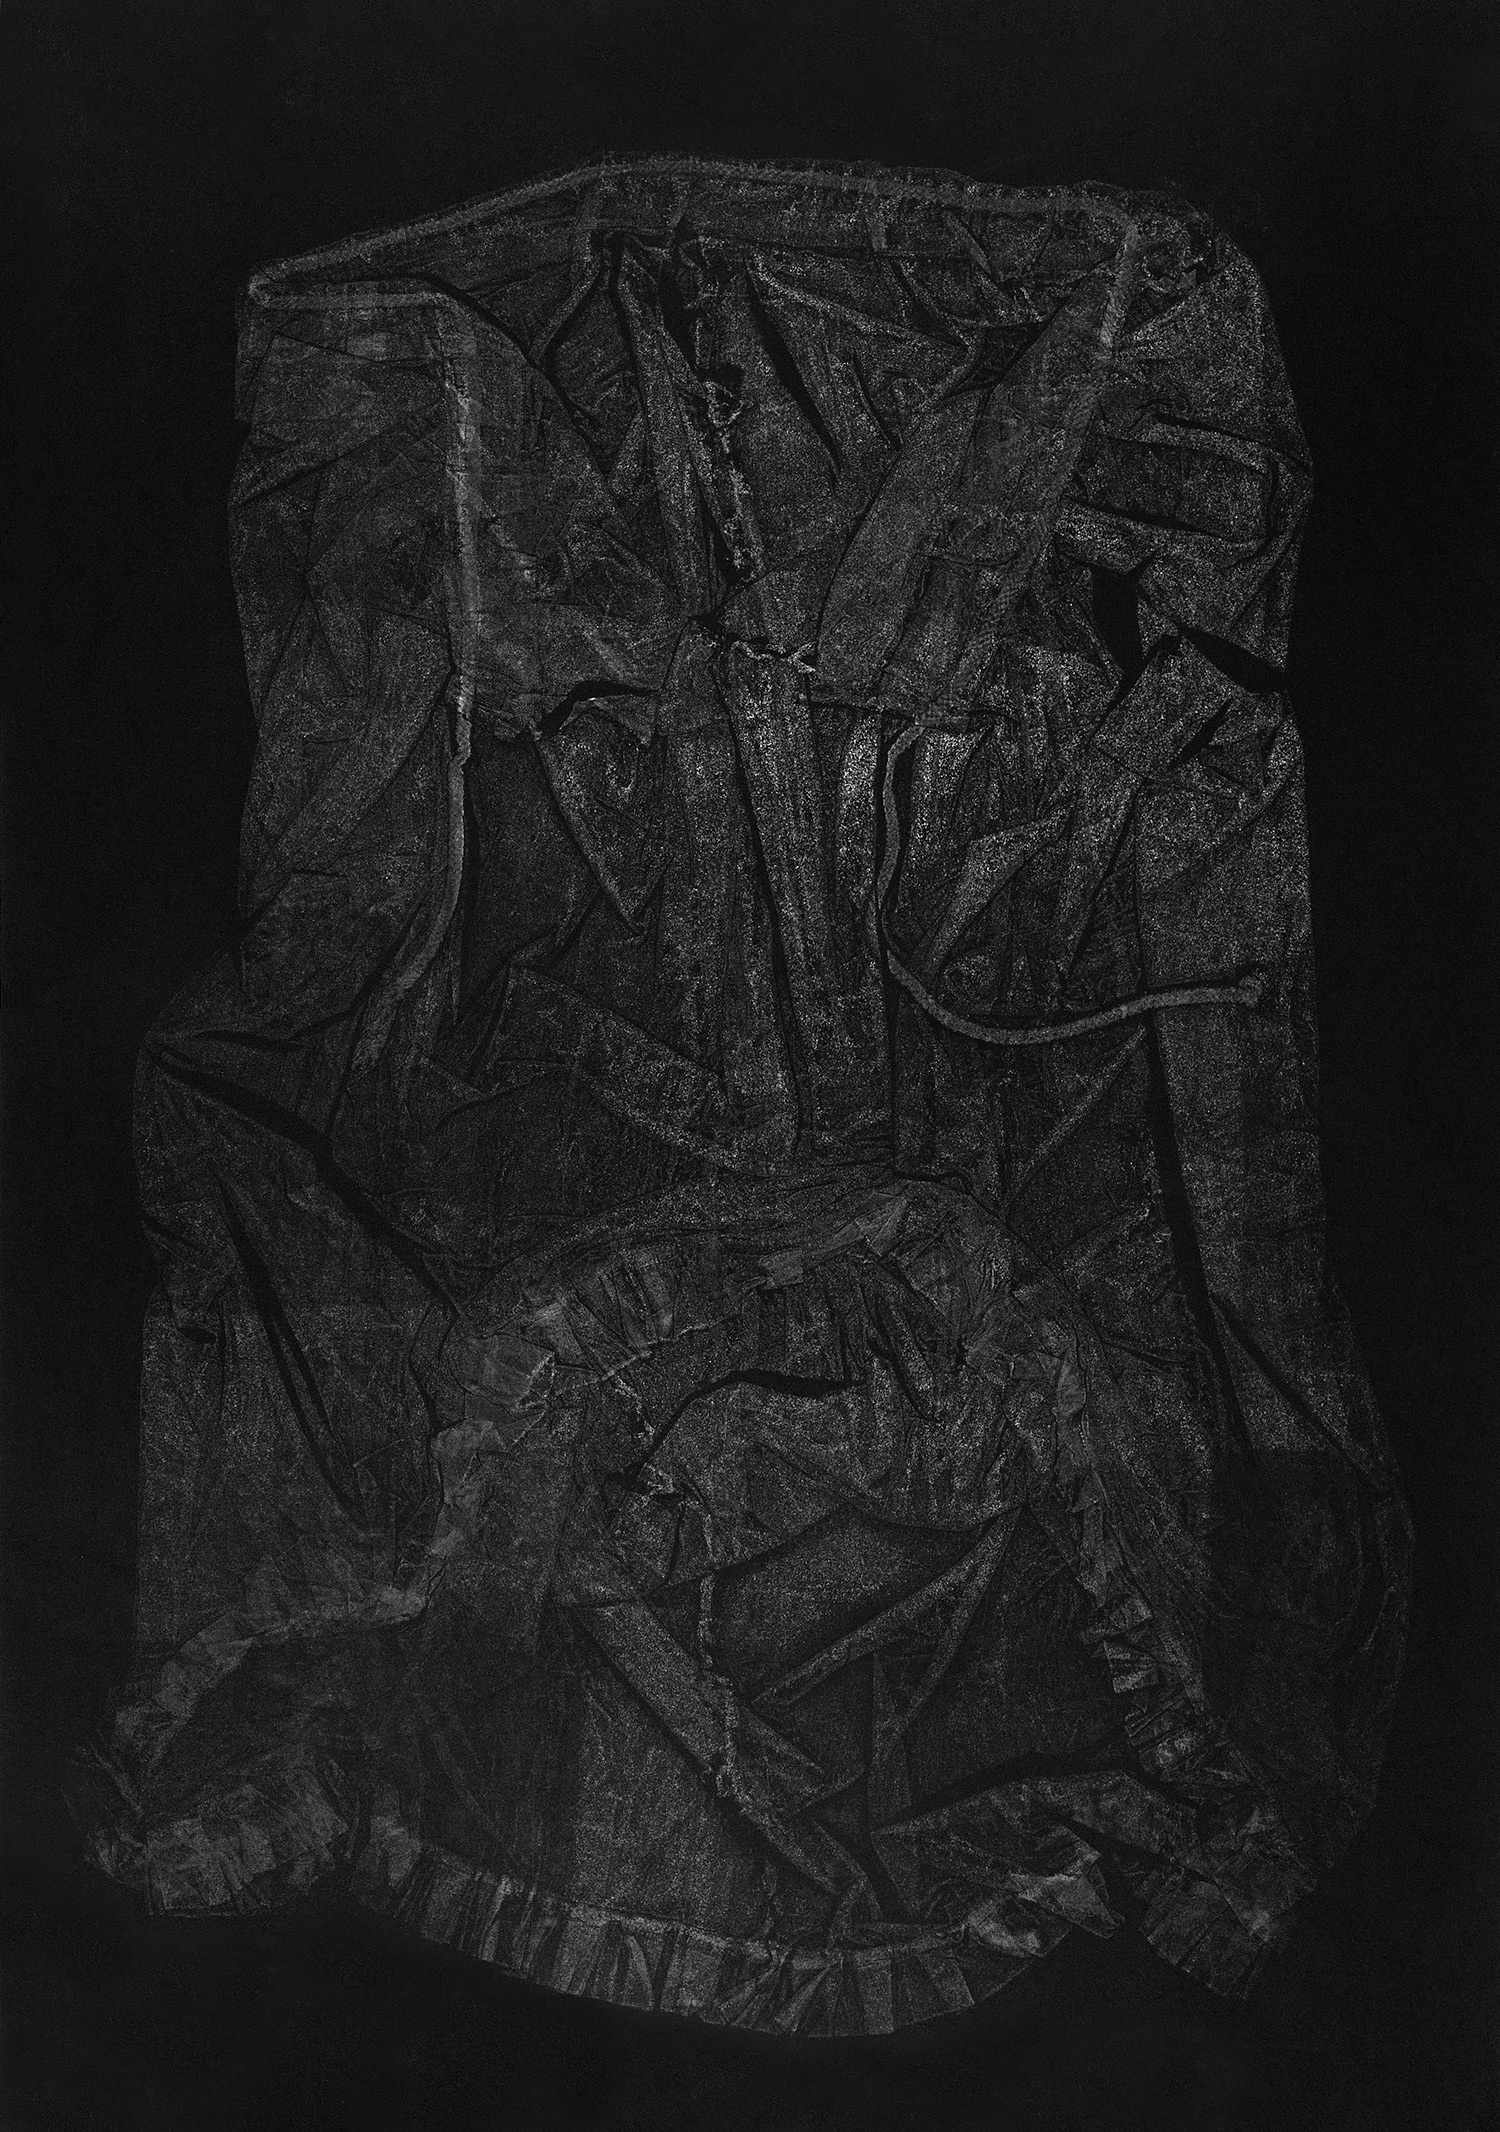 Petticoat III , 2016, relief monoprint, offset ink on Velin Arches Black, 113 x 76.5 cm